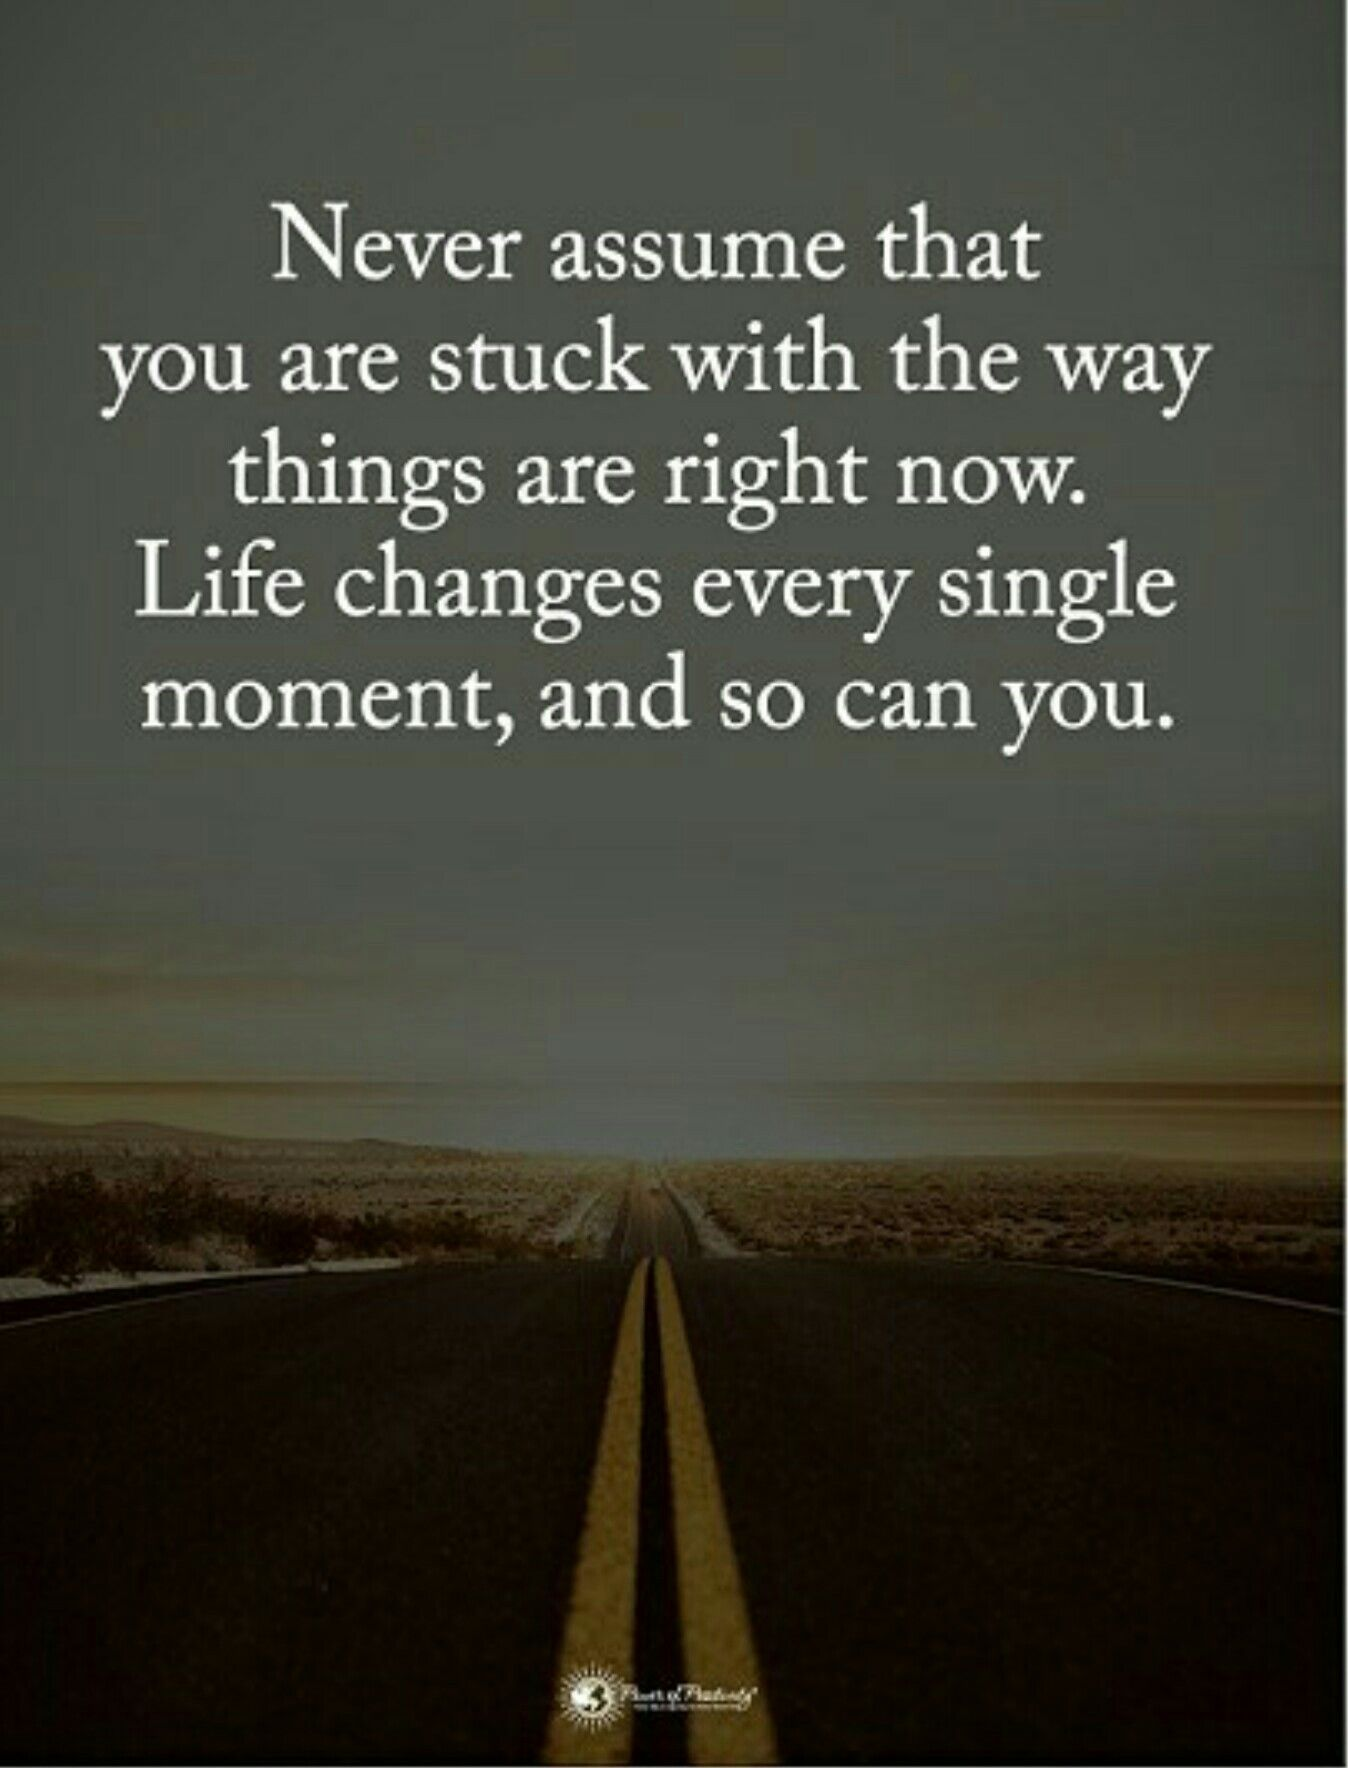 Life Changes Quotes Life Changes Every Single Moment Inspirational Quotes